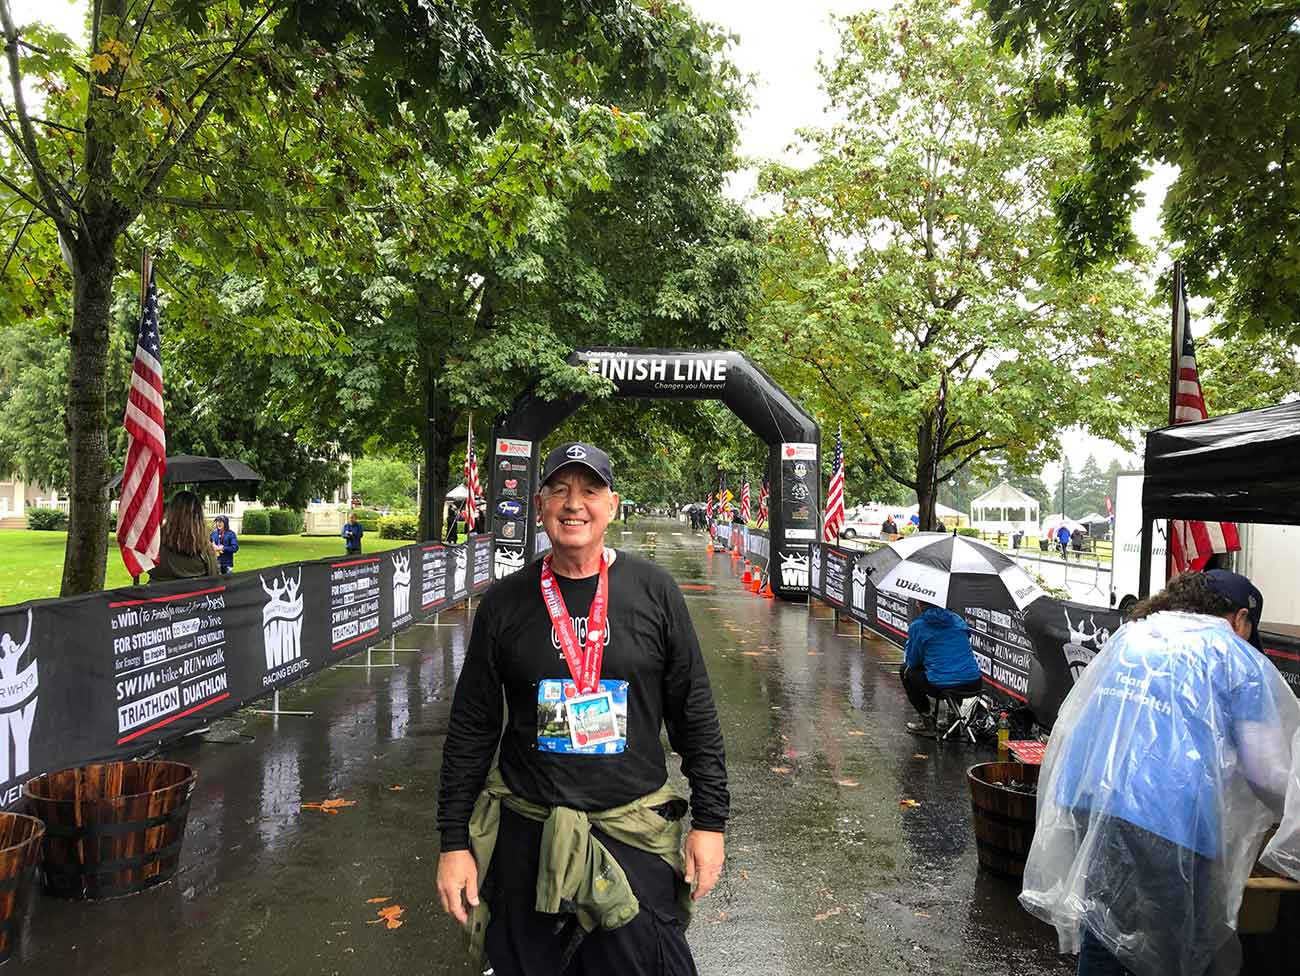 Mike White at the finish line after completing a half-marathon